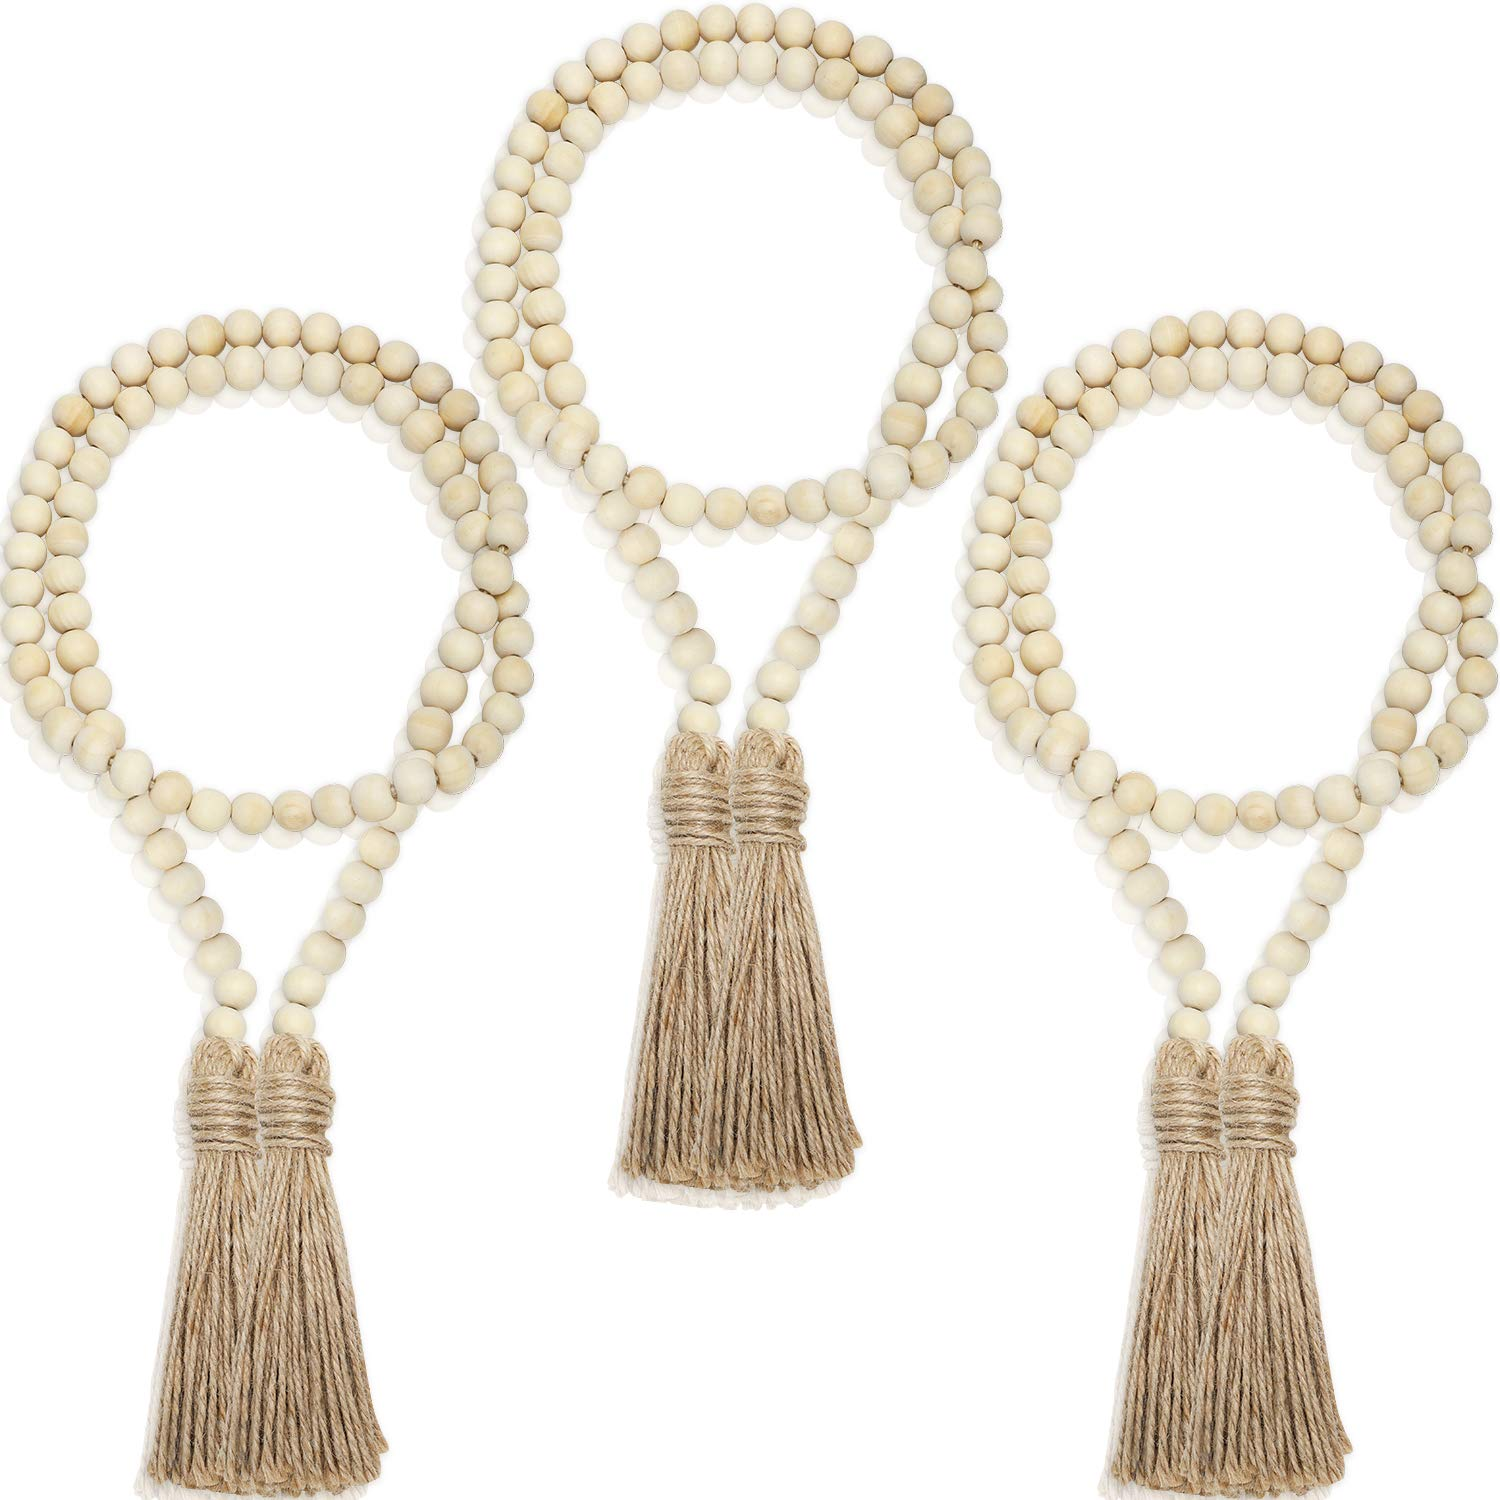 3 Pieces Christmas Wood Bead Garlands Rustic Bead Garlands with Tassels 3.7 Feet Farmhouse Bead Tassel Hanging Garland for Christmas Home Decoration